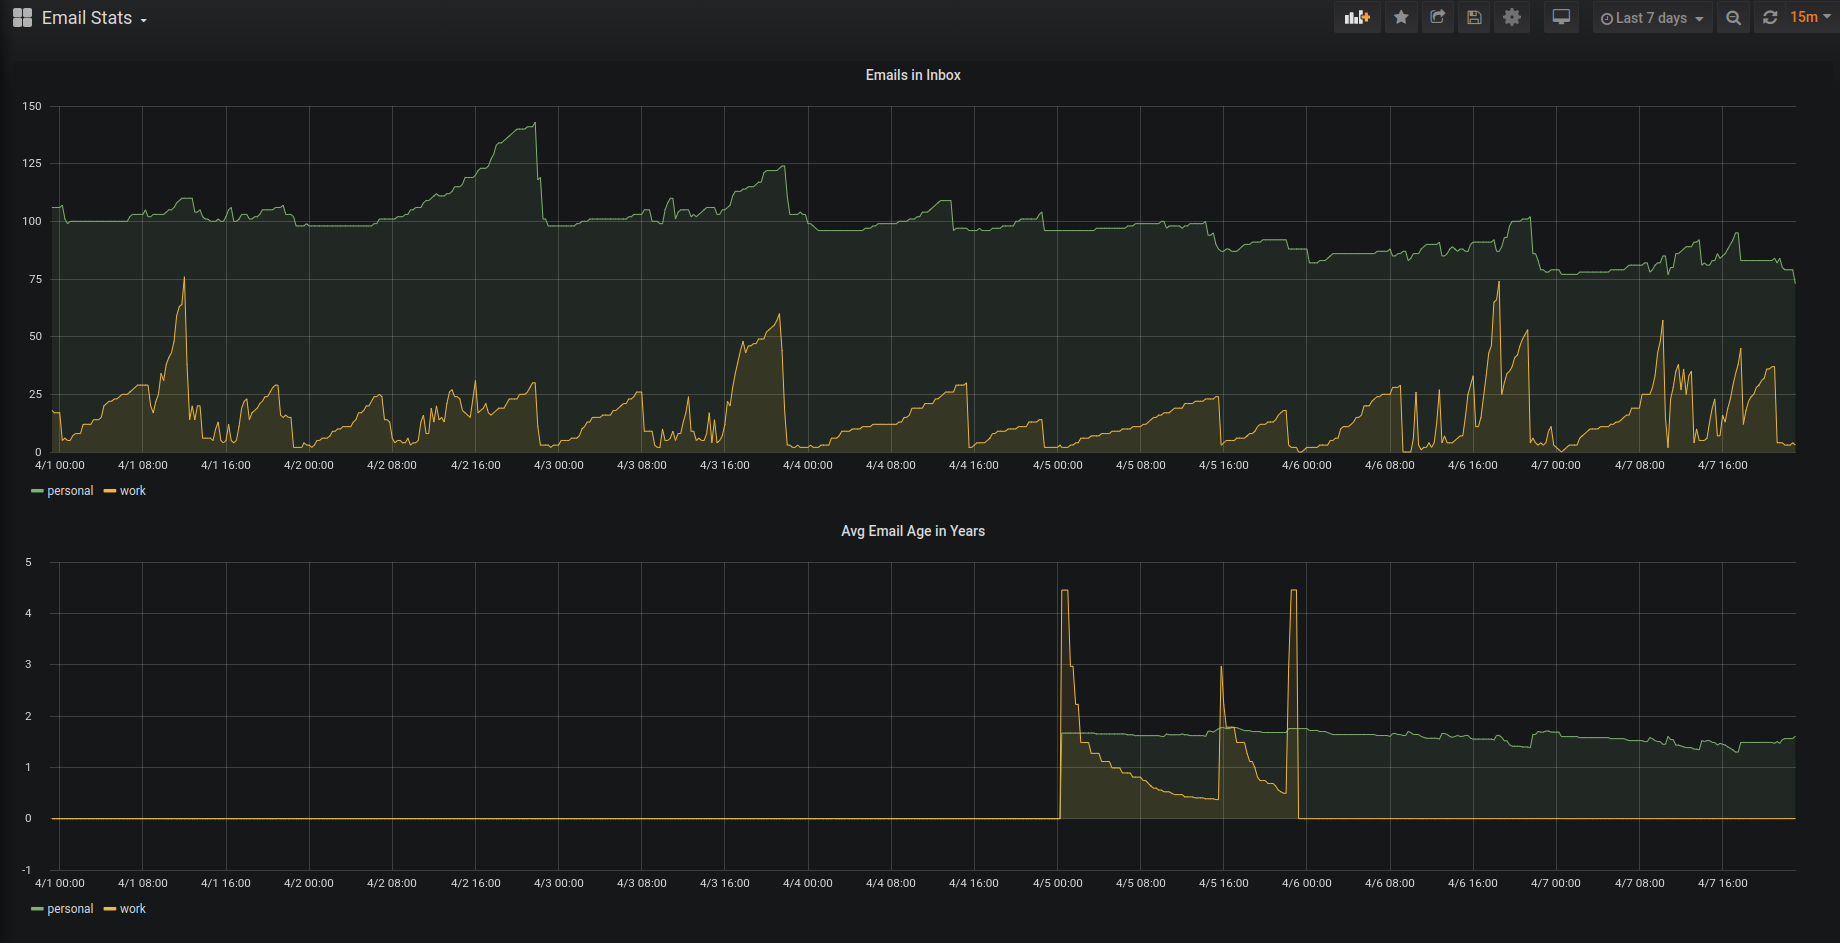 Grafana dashboard for emails in inbox and the avg age